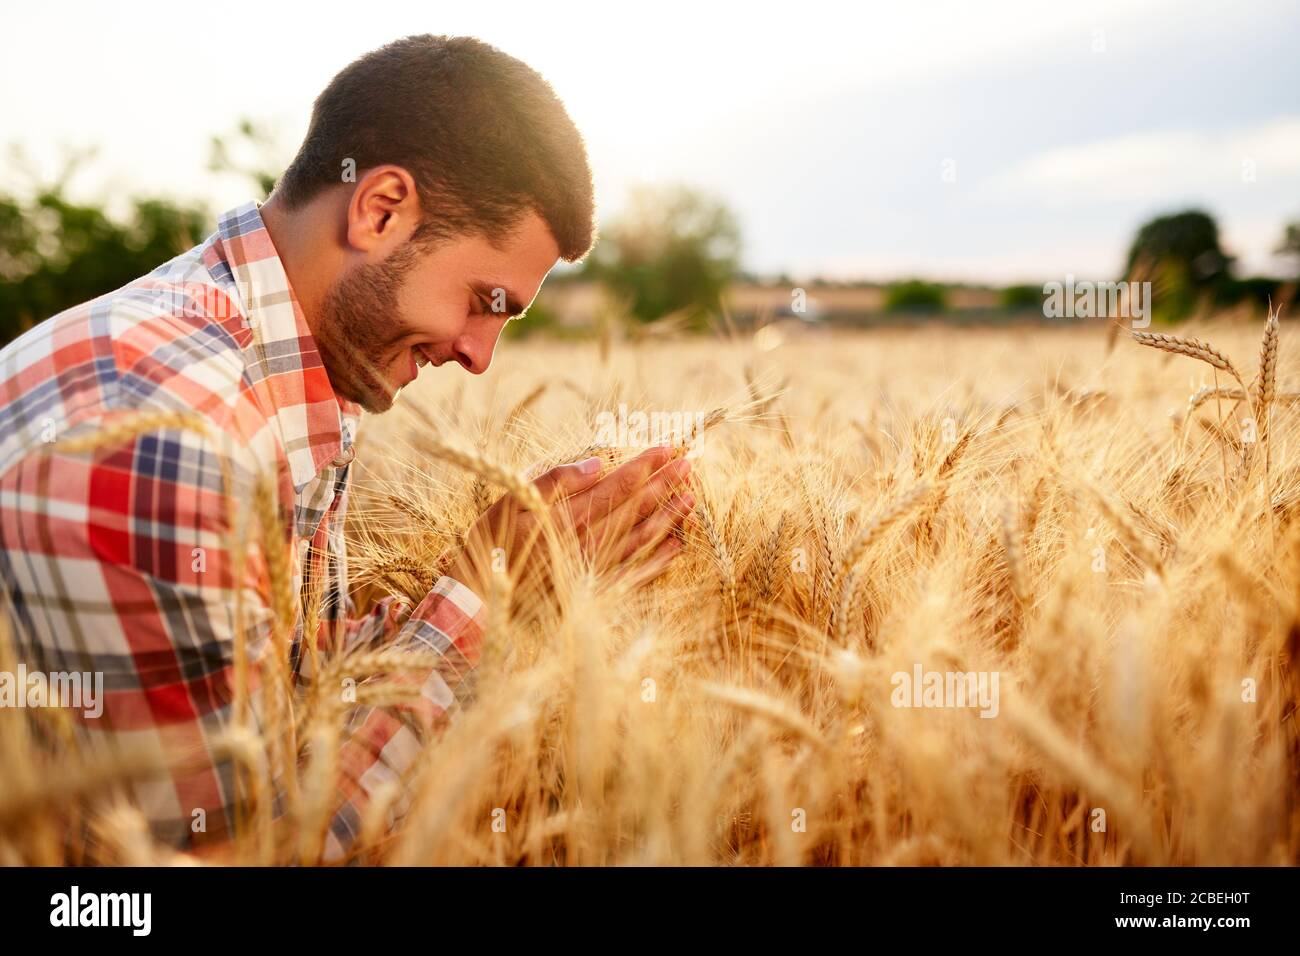 Smiling farmer holding and smelling a bunch of ripe cultivated wheat ears in hands. Agronomist examining cereal crop before harvesting on sunrise Stock Photo